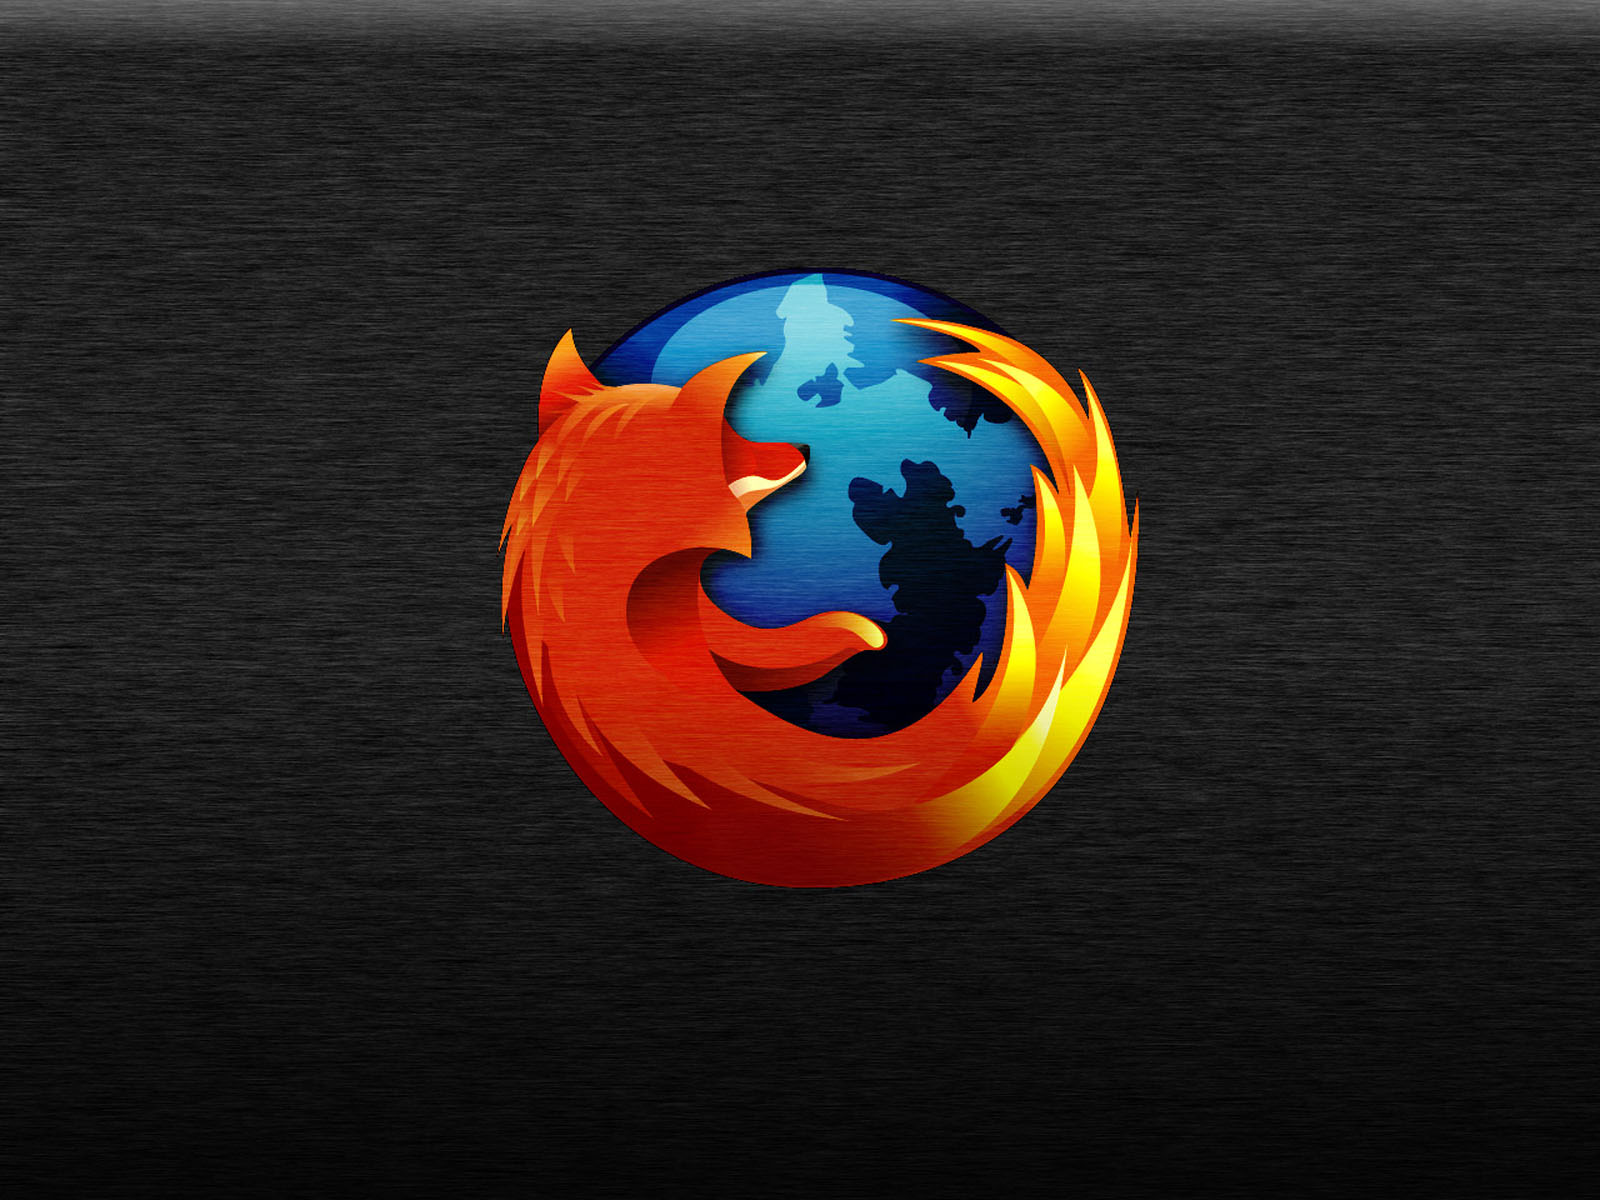 Keywords Firefox Wallpapers Firefox DesktopWallpapers Firefox 1600x1200